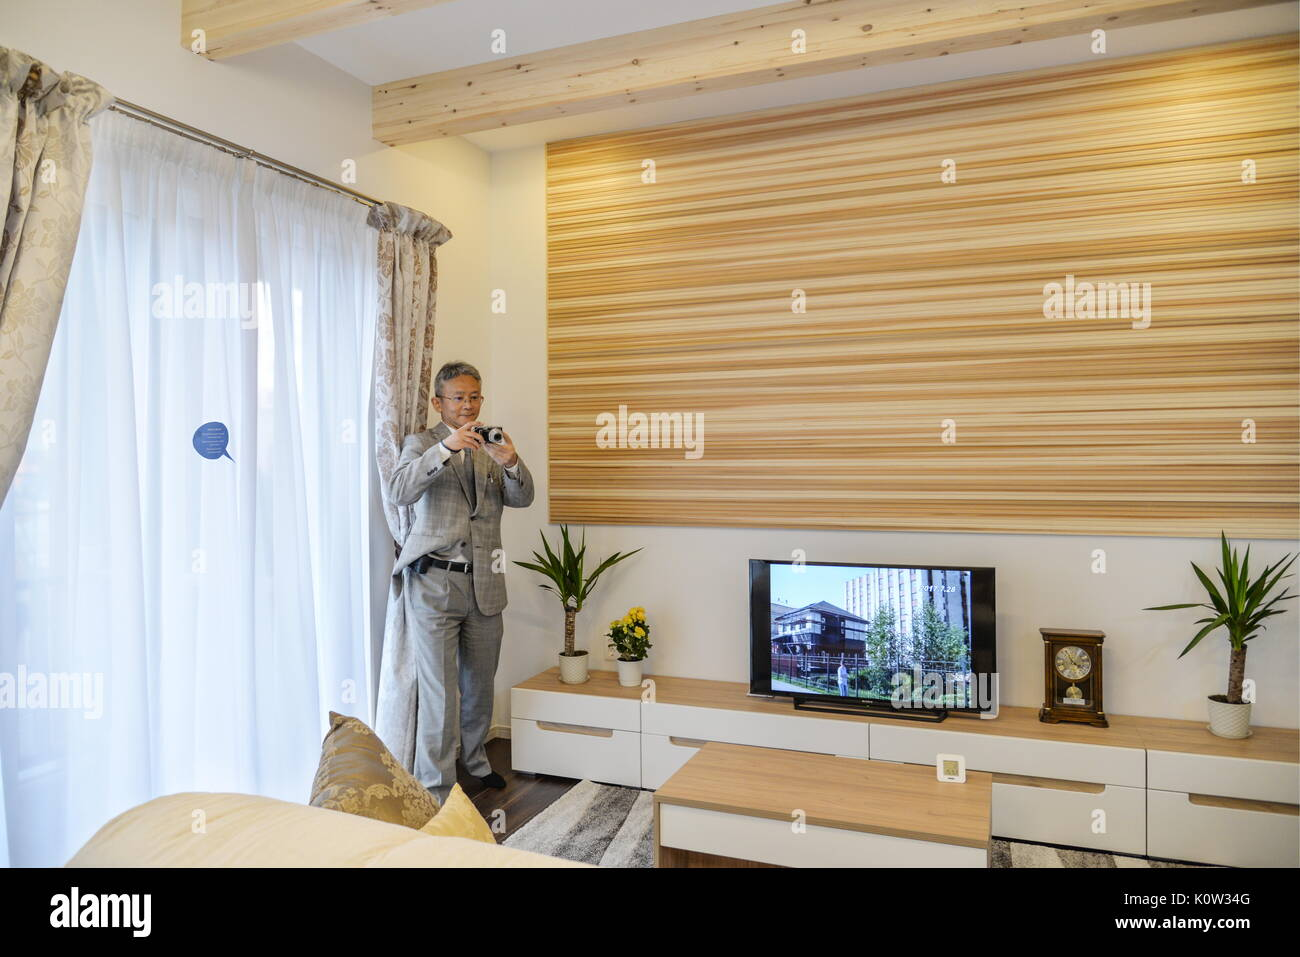 VORONEZH, RUSSIA - AUGUST 24, 2017: The living room of the first Russian-Japanese two-storey smart home made of wood and eco-friendly materials. The house is equipped with energy management system, air quality monitors and temperature sensors. Kristina Brazhnikova/TASS - Stock Image